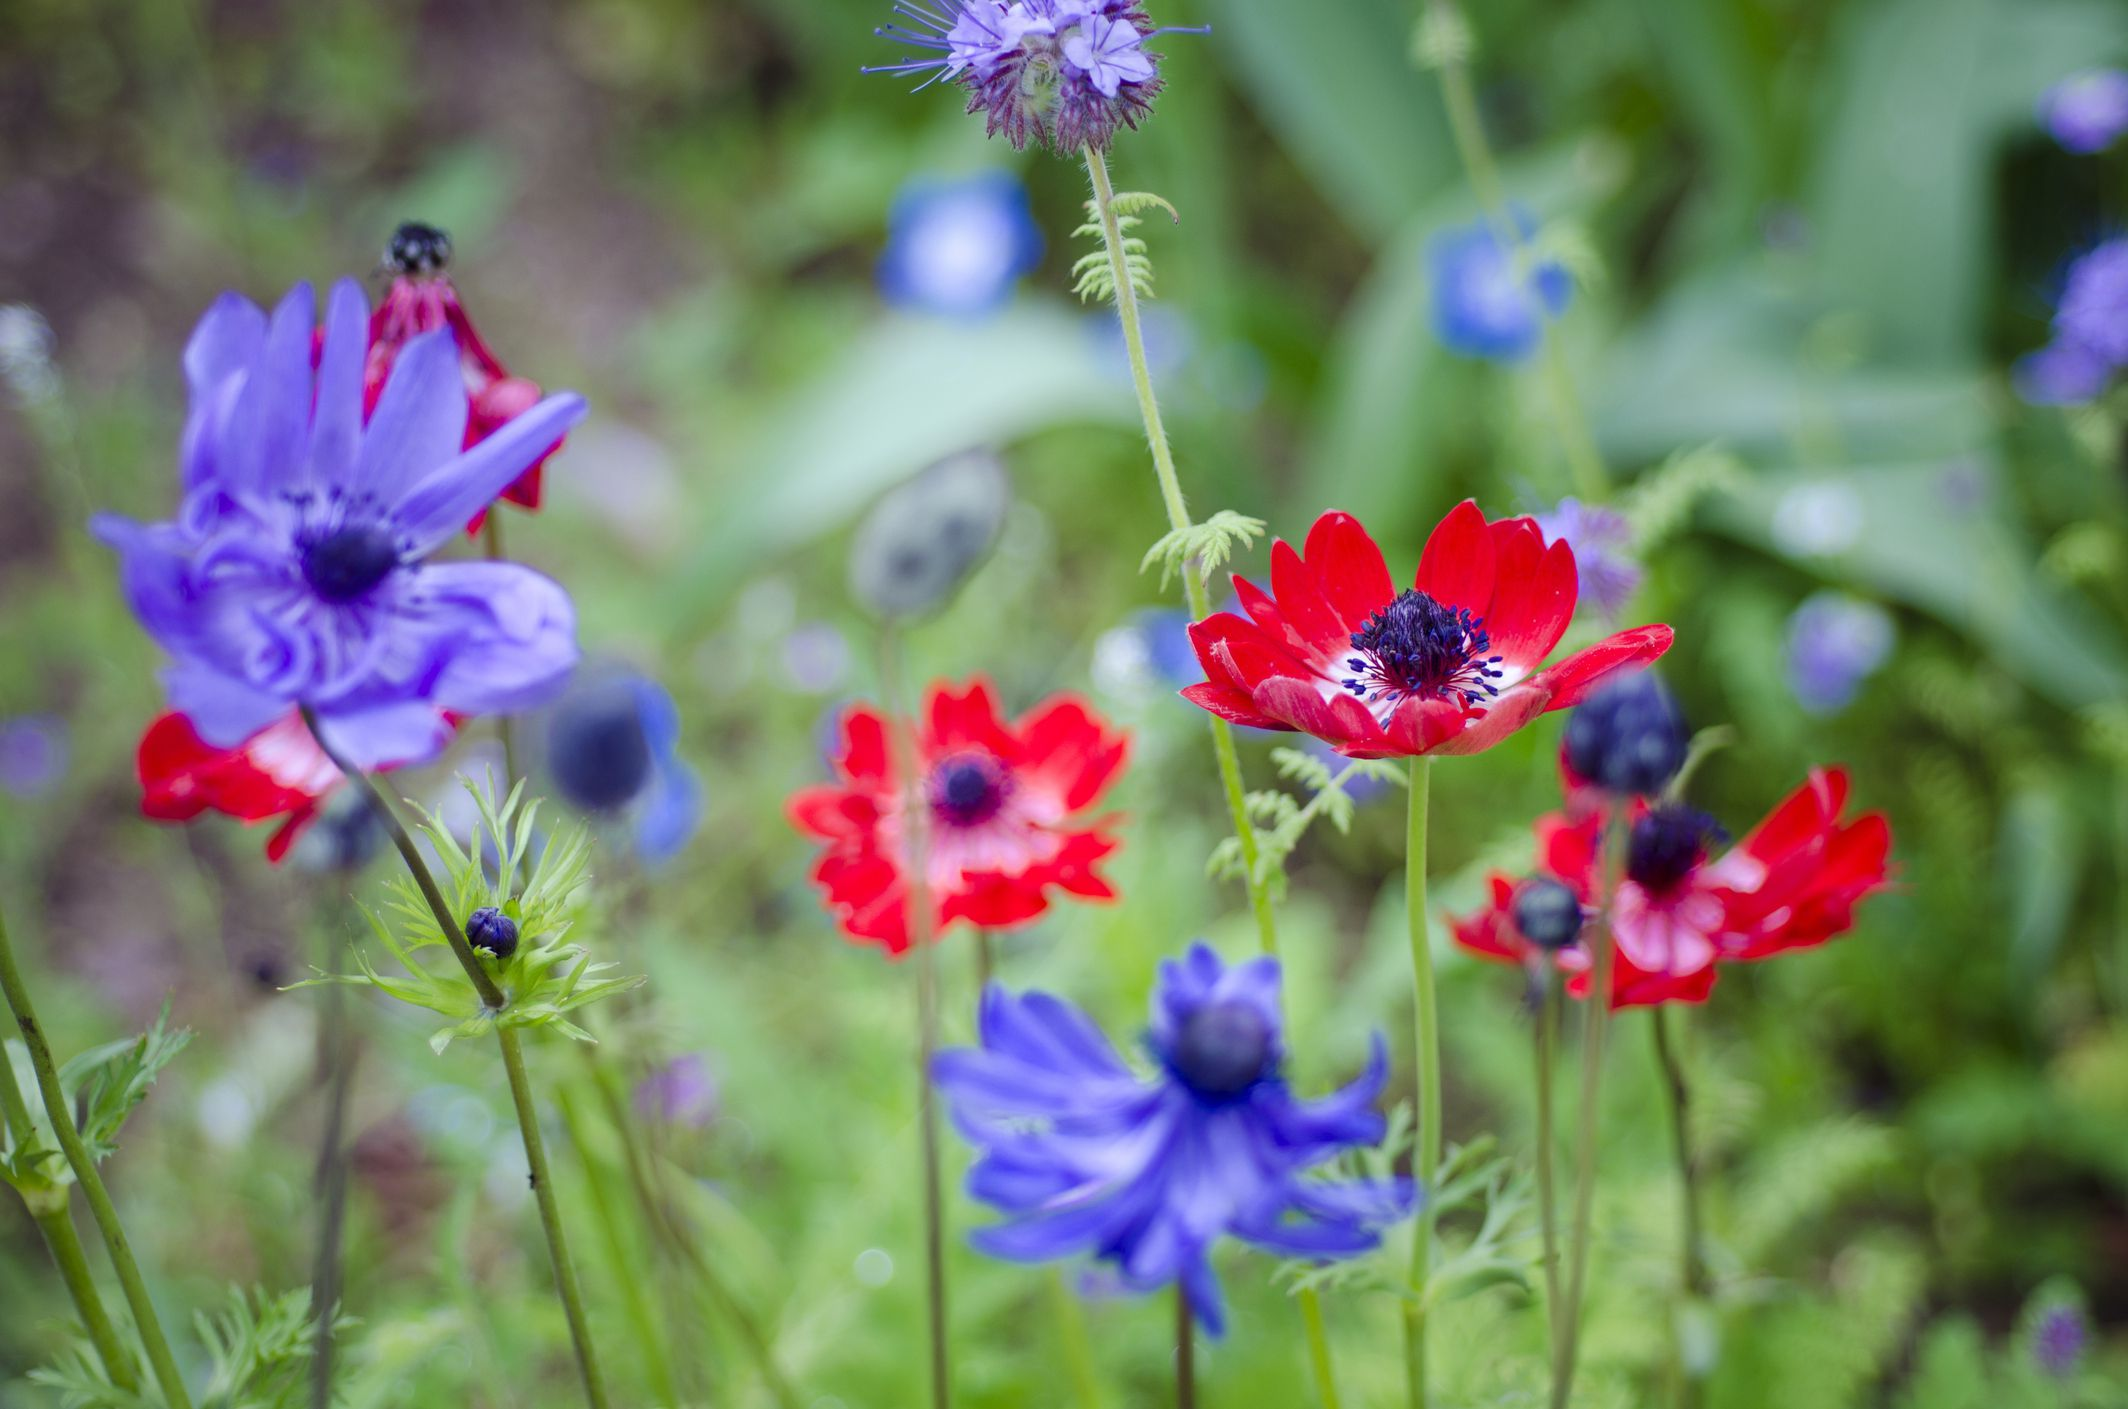 How to Grow and Care for Anemone Flowers